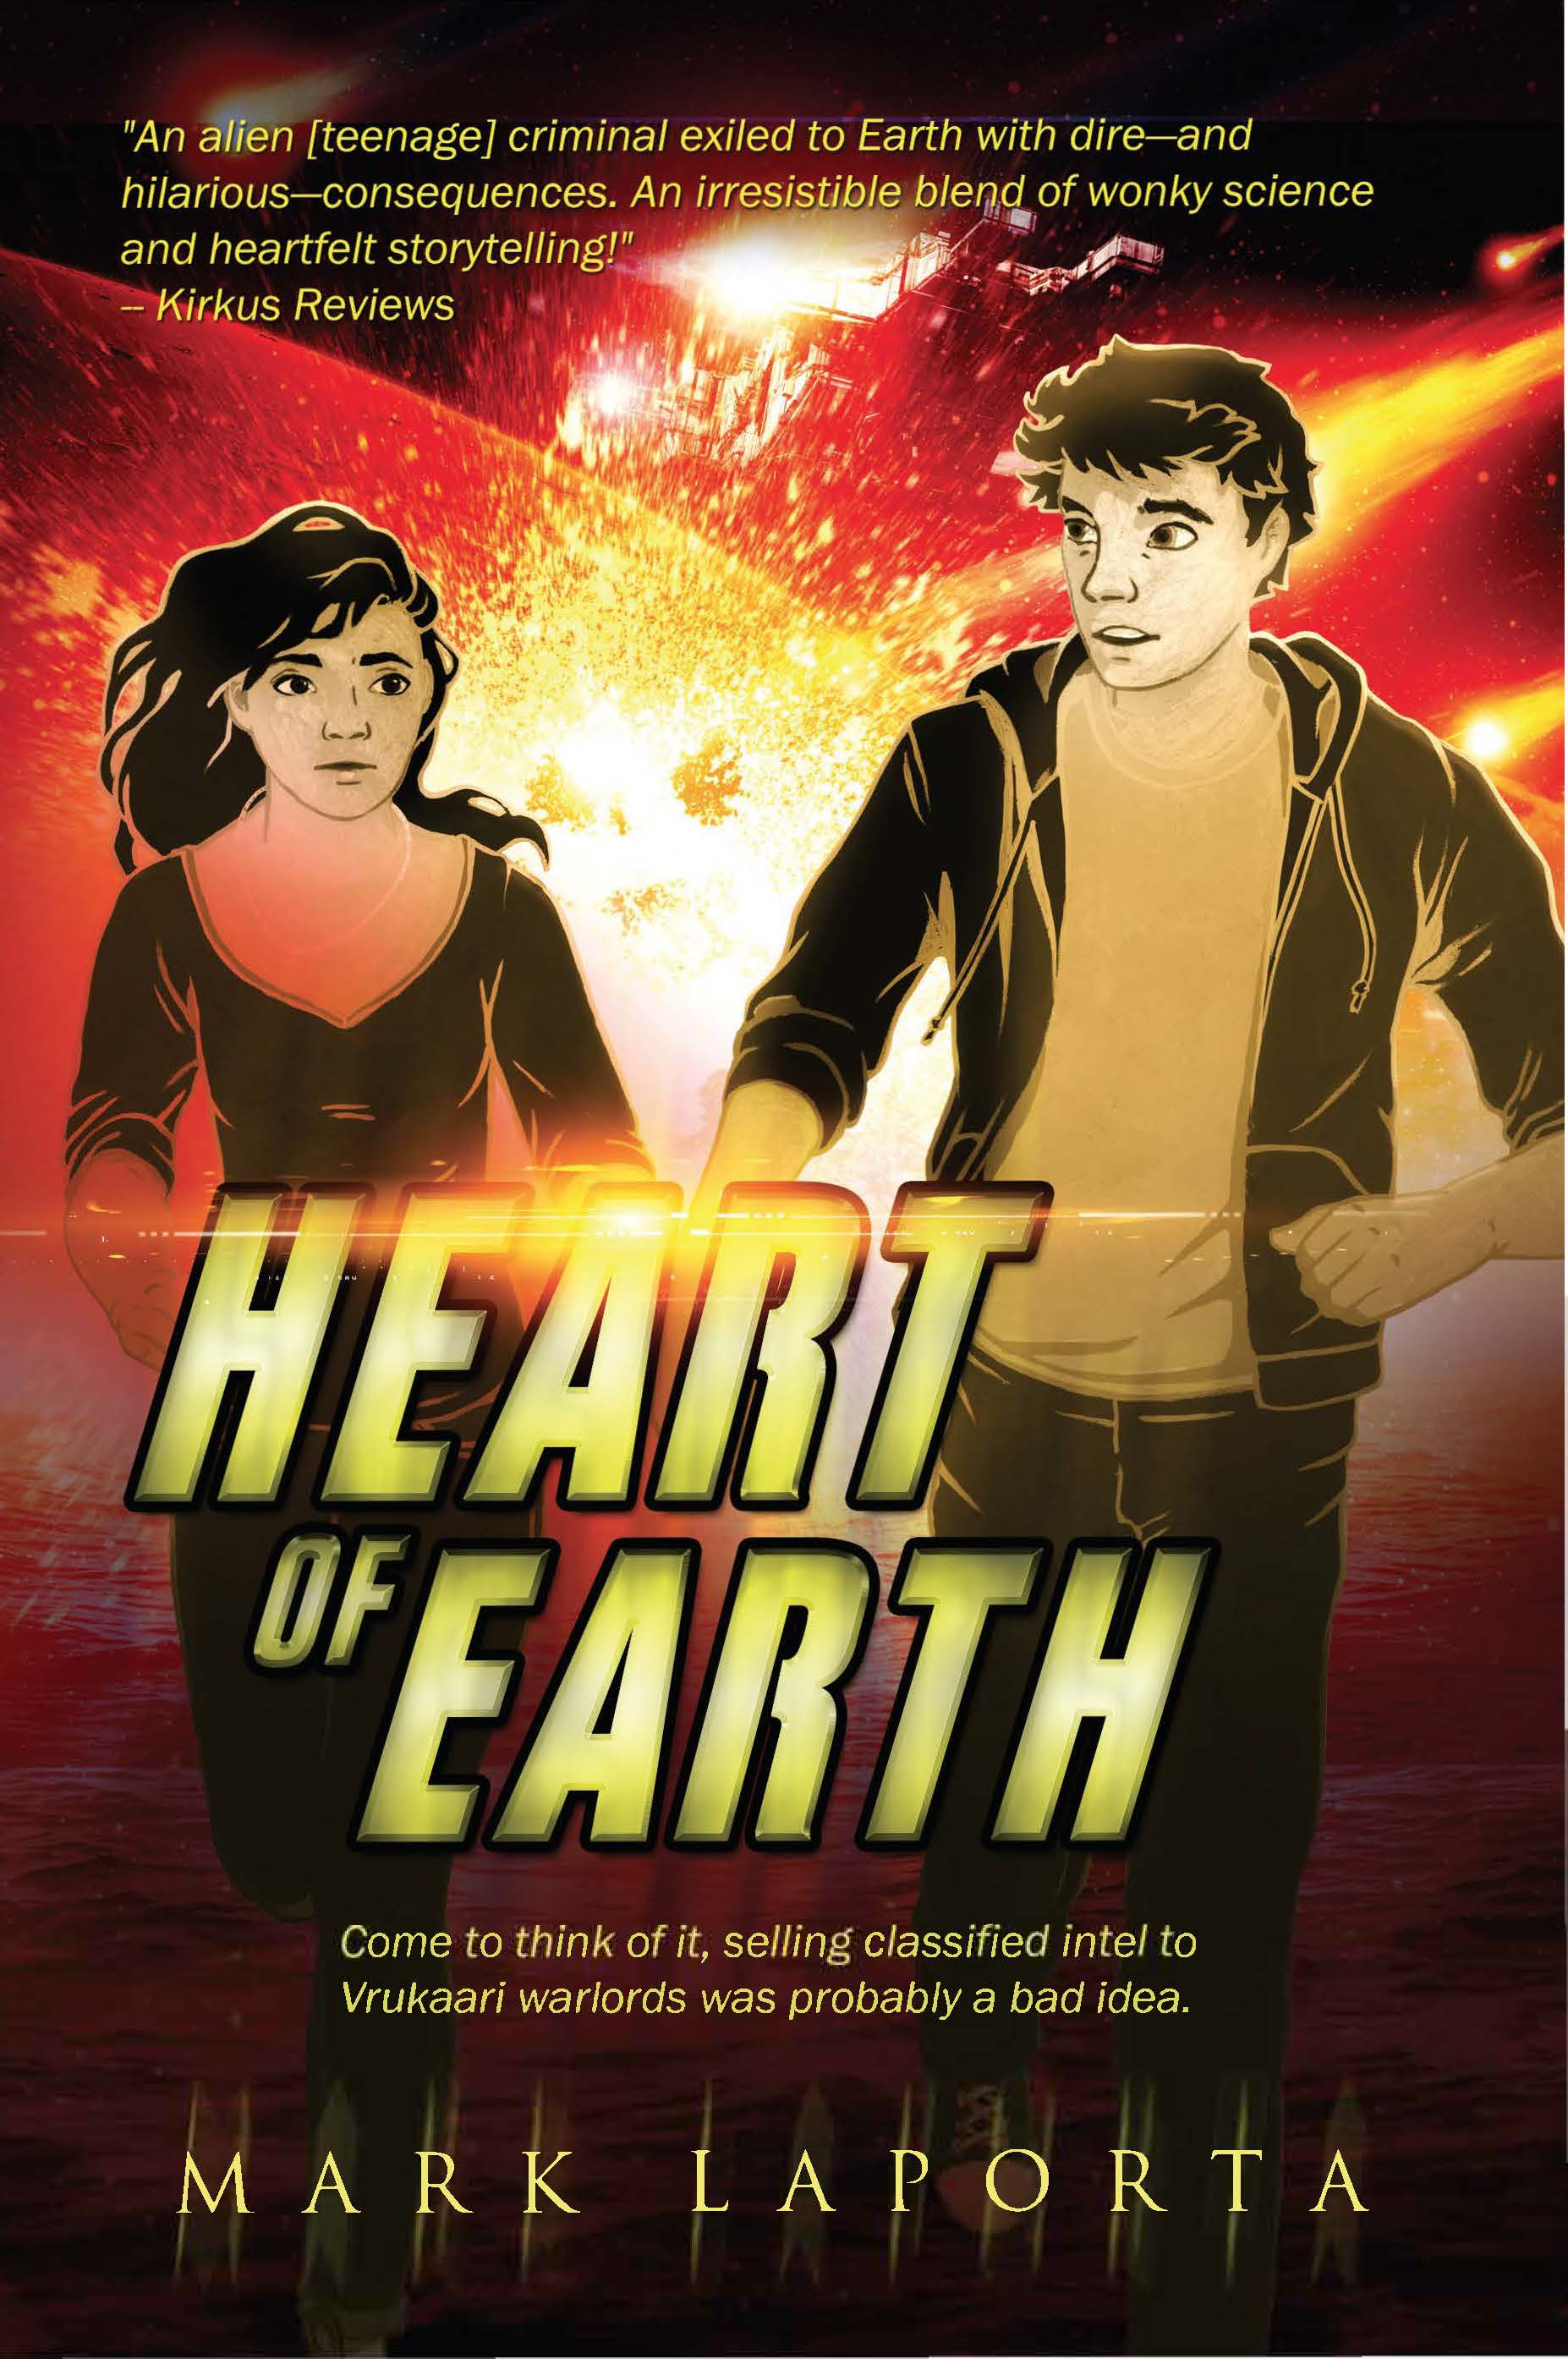 heart-of-earth-2017-kindle-cover